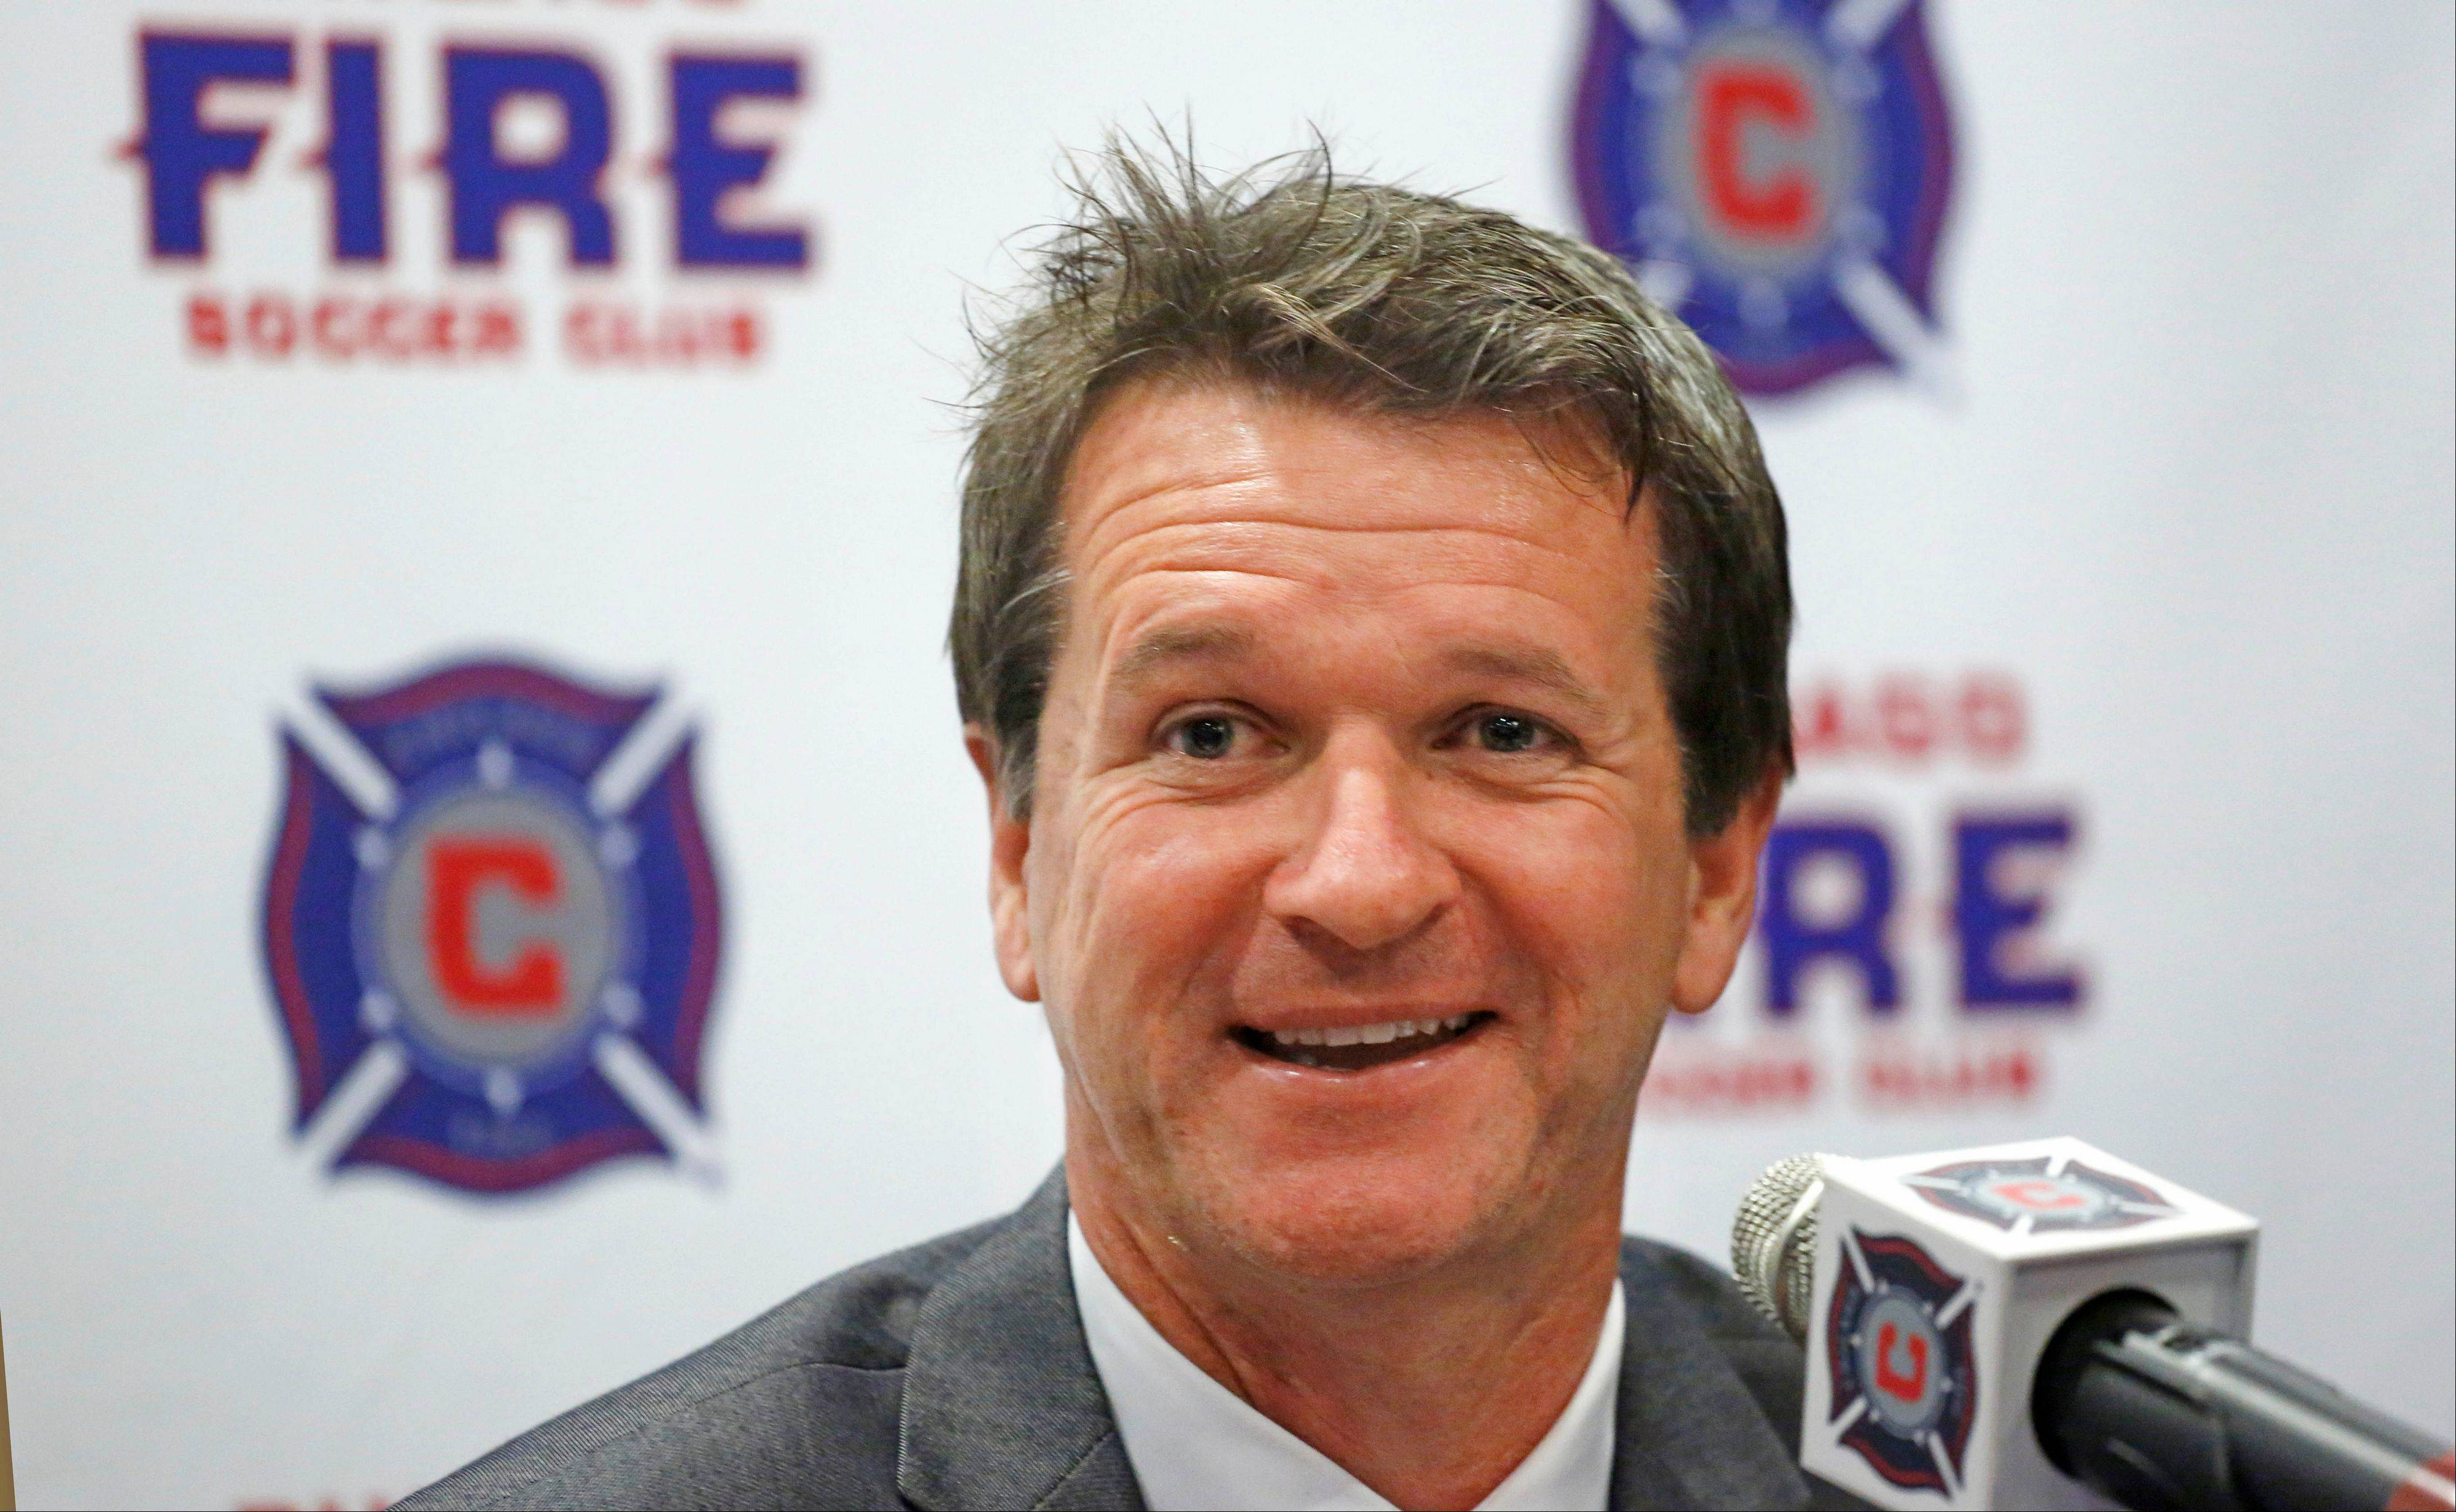 Frank Yallop, the new head coach and director of soccer for the Chicago Fire, has won two MLS Cup titles in his coaching career.